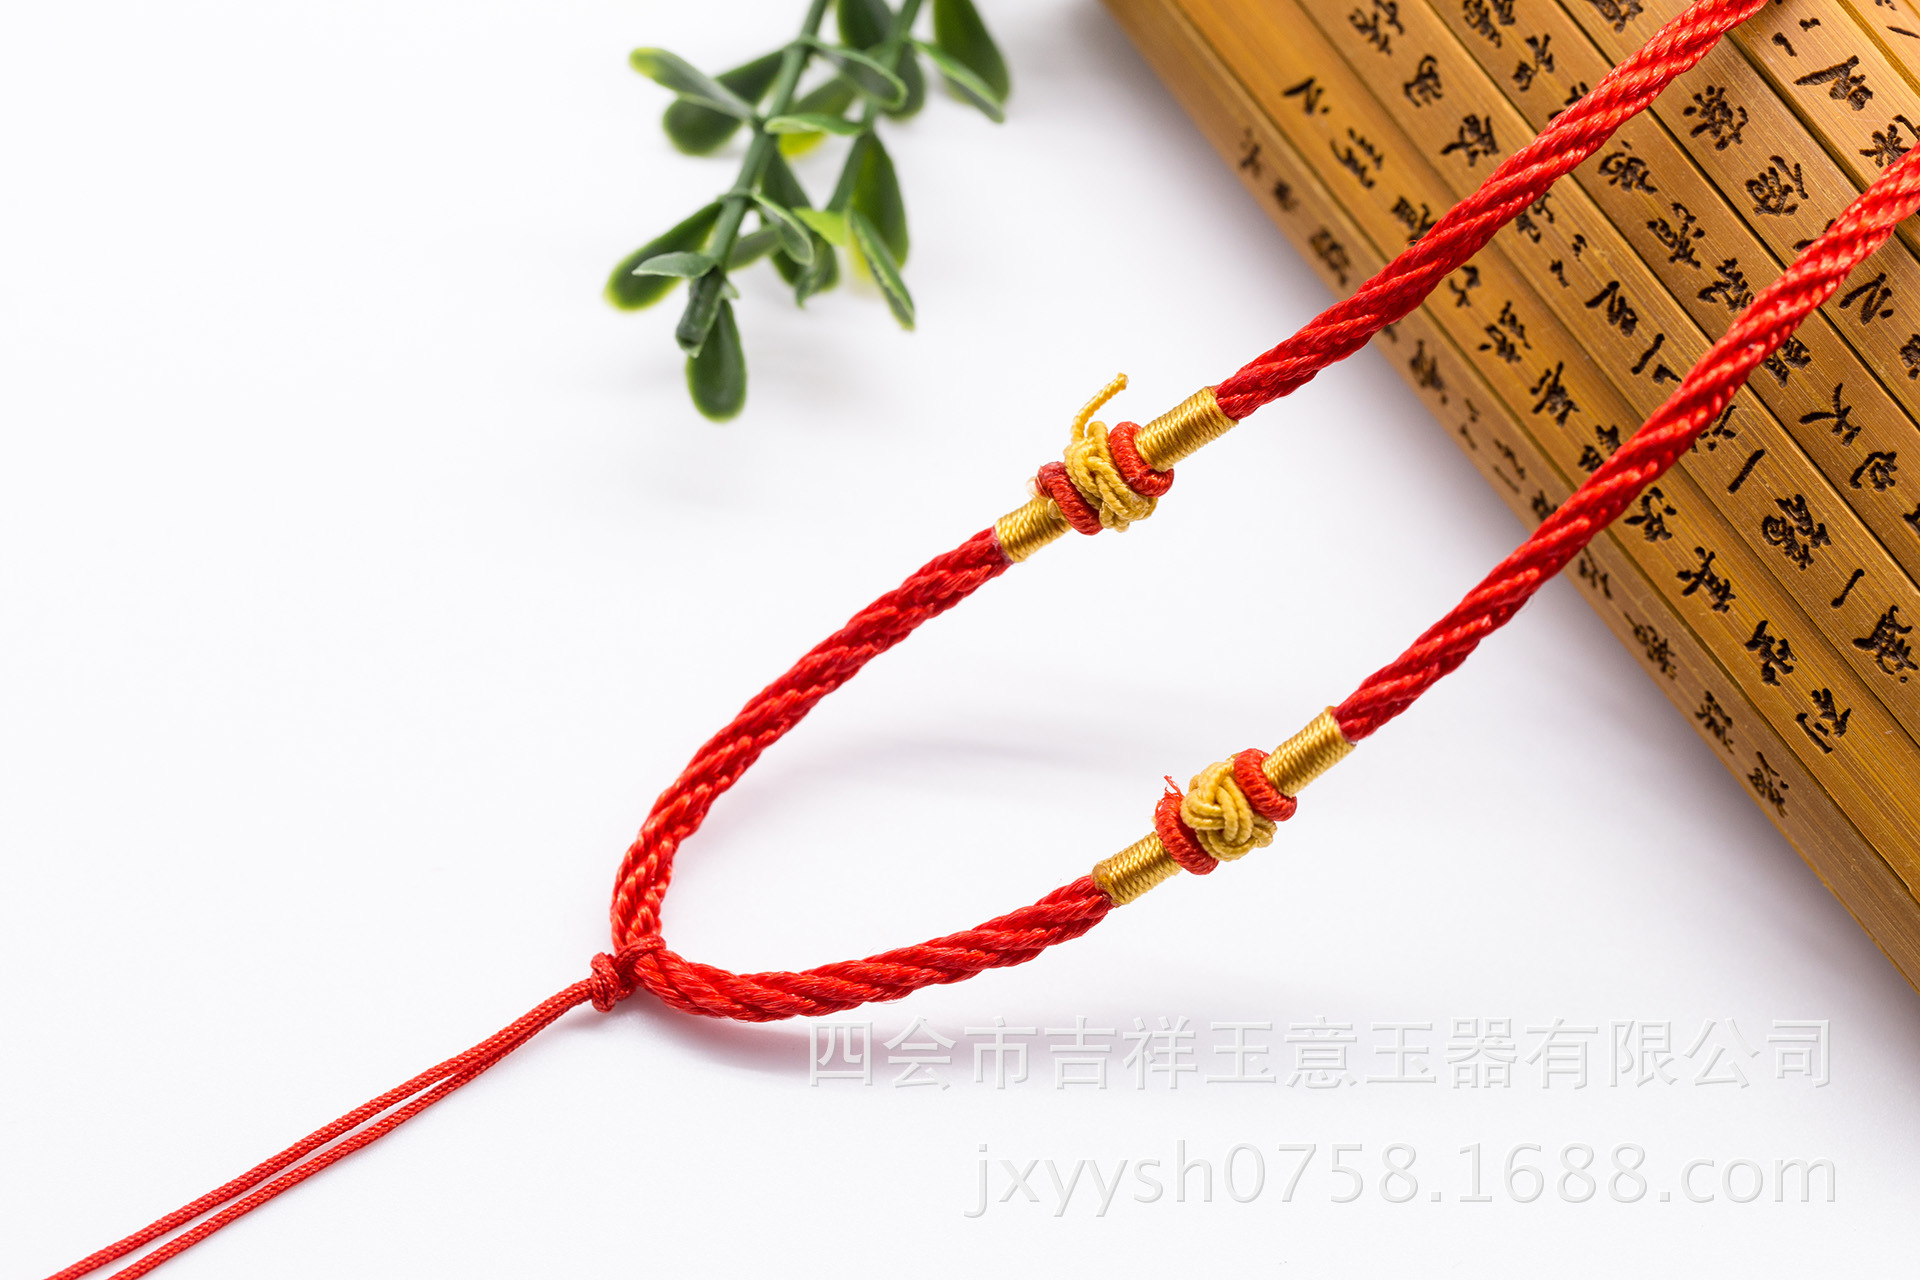 dây đeo diy upscale hand-woven emerald jade pendant necklace rope lanyard male and female red string